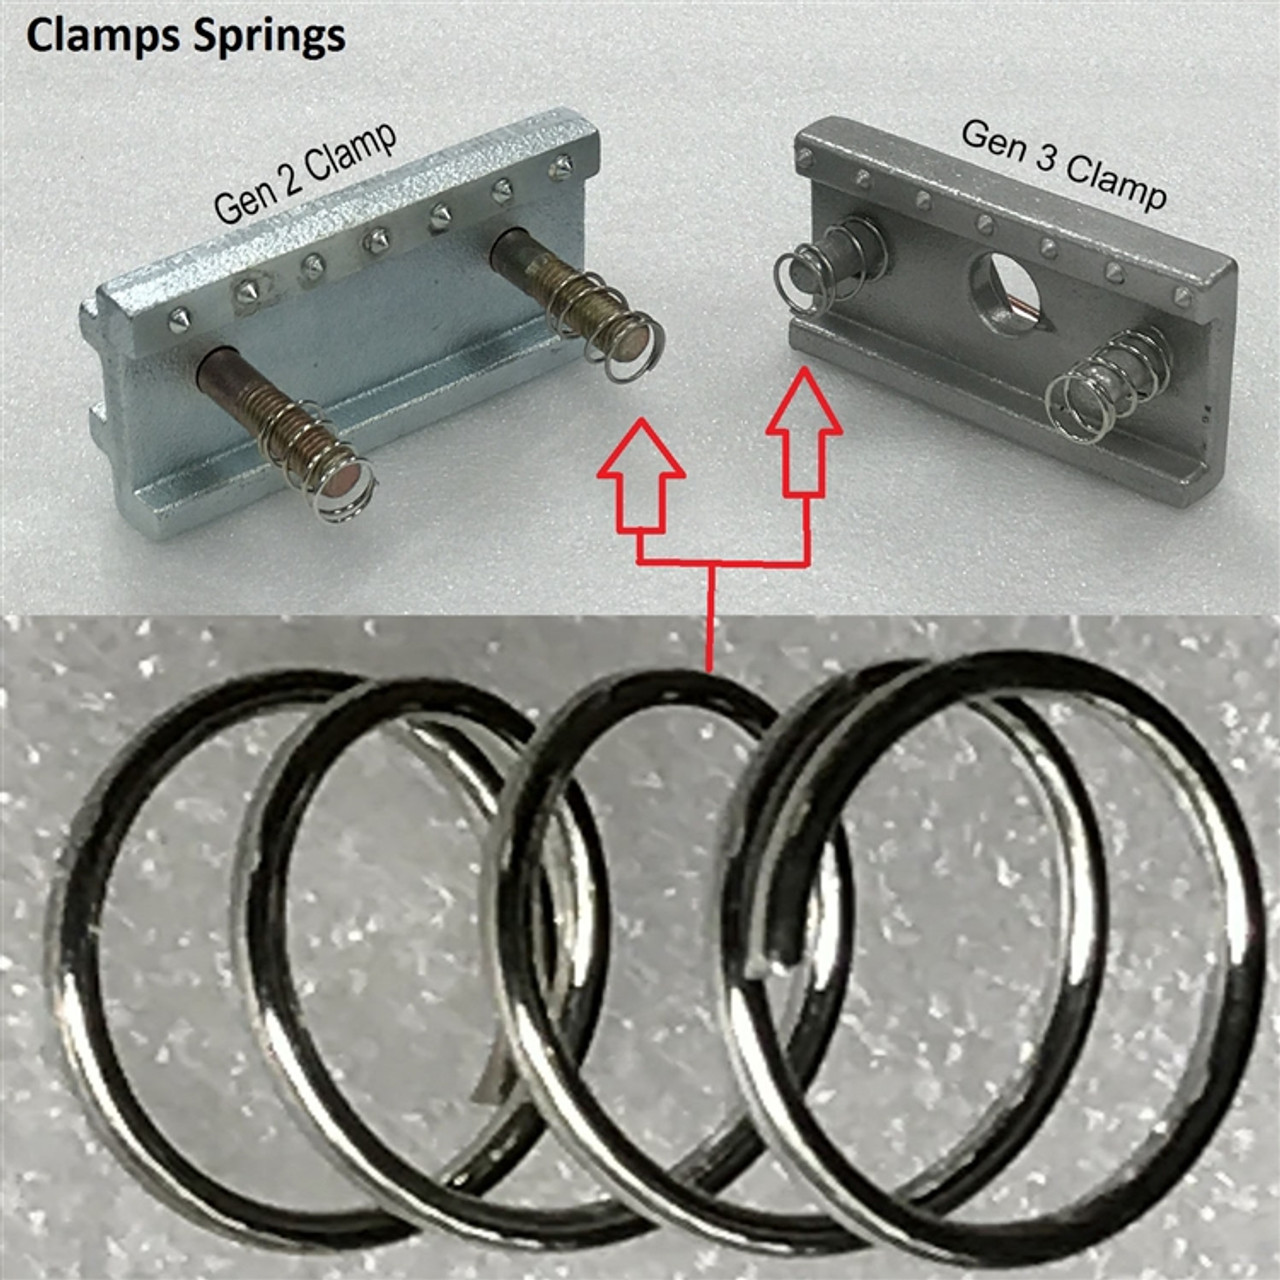 Chief Frame Machine Clamp Springs Gen 2, 3 and 4